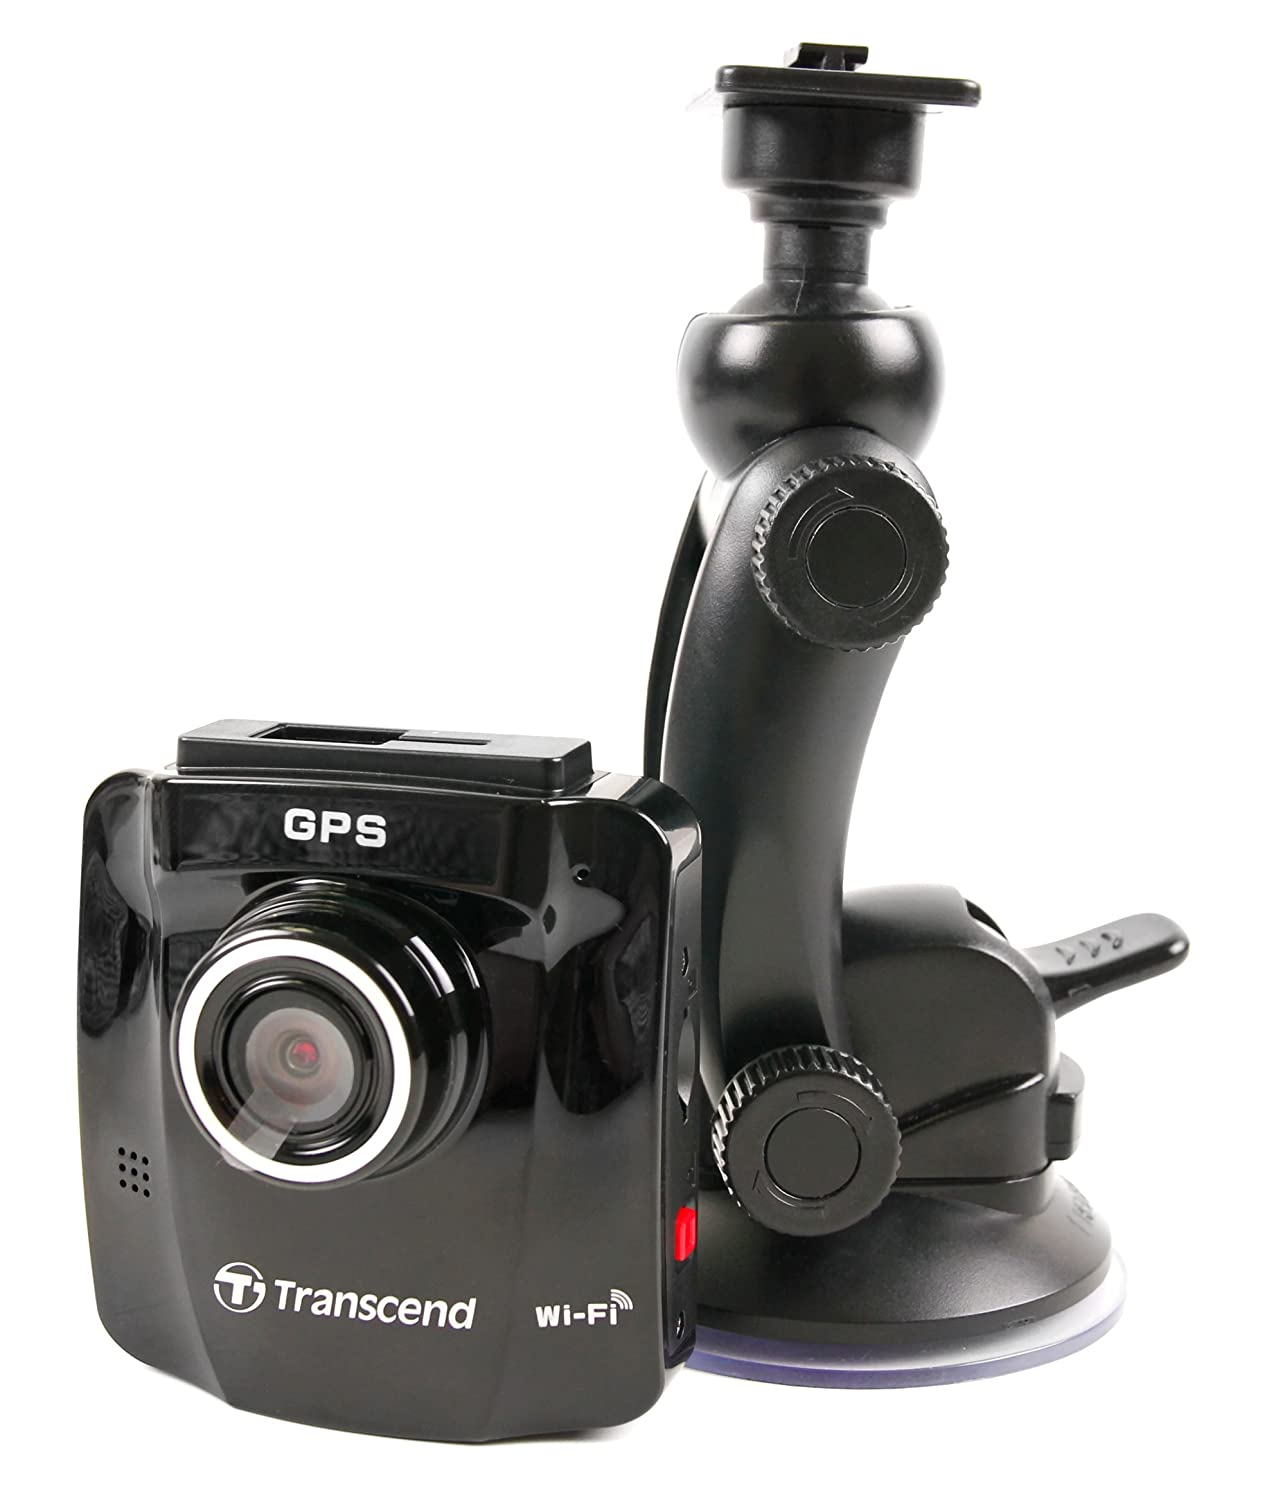 DURAGADGET Premium Quality in-Car Windscreen & Dashboard Suction Mount - Compatible with The New Transcend DrivePro 220 / DrivePro 200 / DrivePro 100 / DrivePro 520 / DrivePro 50 Dash Cams